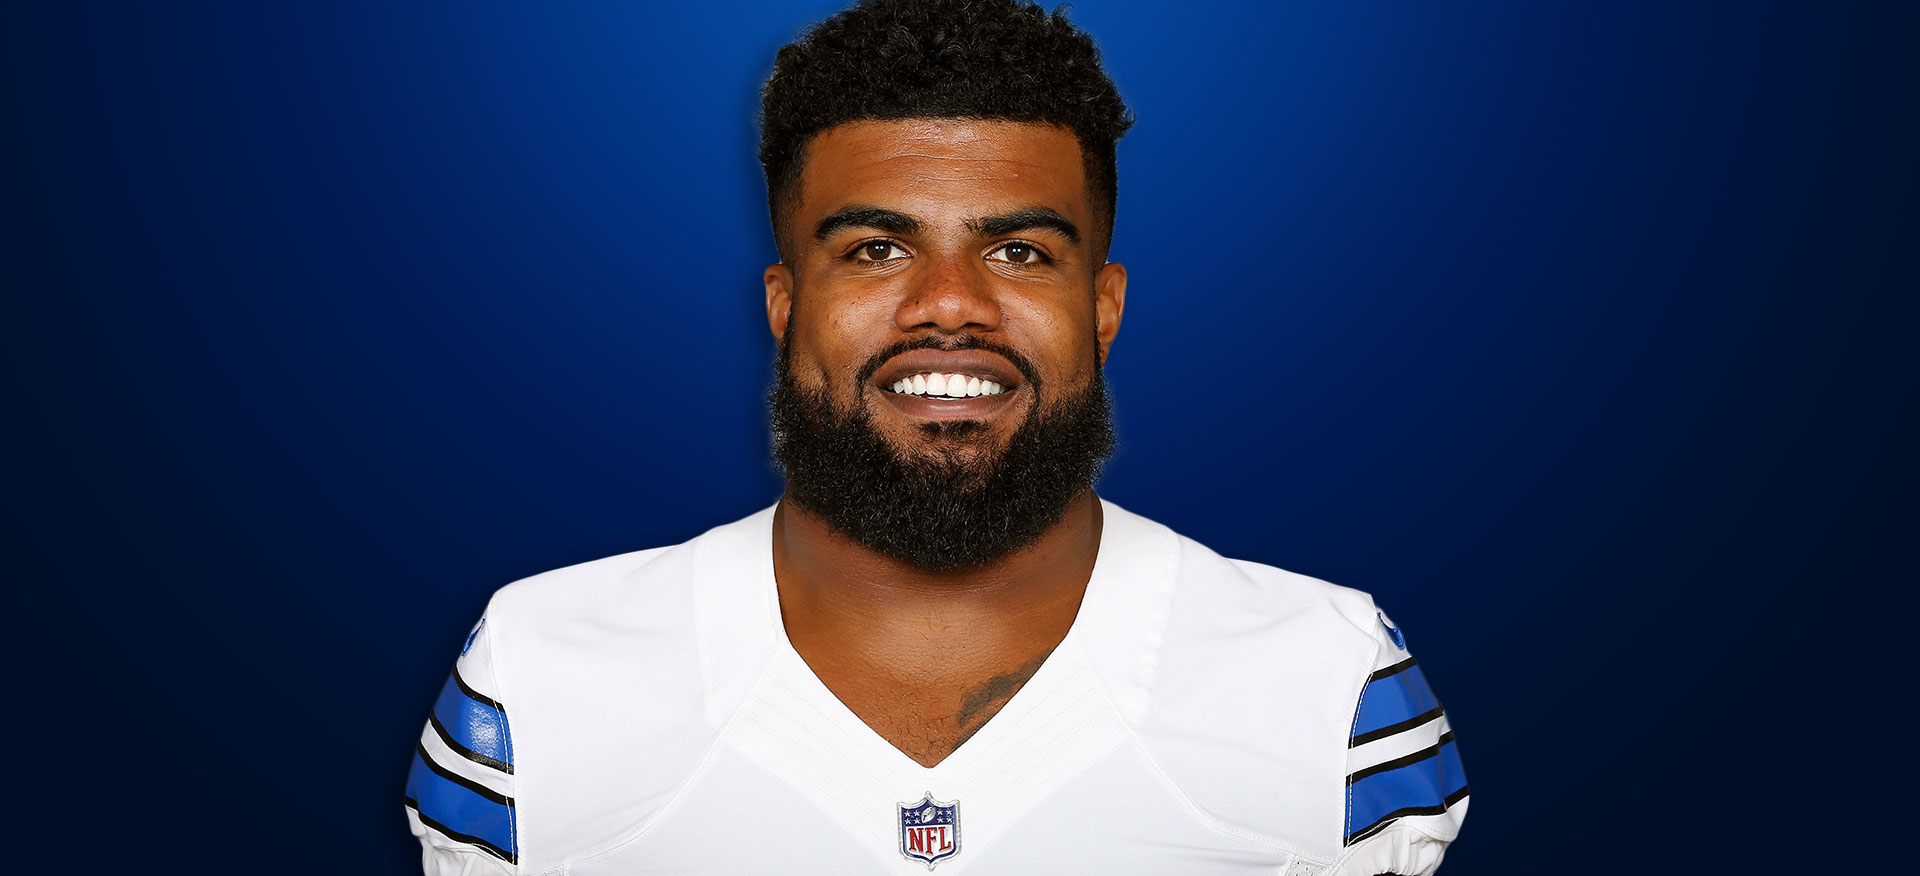 tx city map with Dallas Rb Ezekiel Elliott Suspended 6 Games In Domestic Case on Dinosaur World besides Dallas Rb Ezekiel Elliott Suspended 6 Games In Domestic Case additionally Cartagena Walled City Map Of Tourist VHjwu 7CwKRFu3urXKqSpHSzPJLUo8GyuV3Rjuzsv9tX 7C7LTHqc2uzzls3xps310PCPH4M9KfcgMxks0lJ Mb9YA as well Charter Jet To Laredo Texas likewise Albany ga.